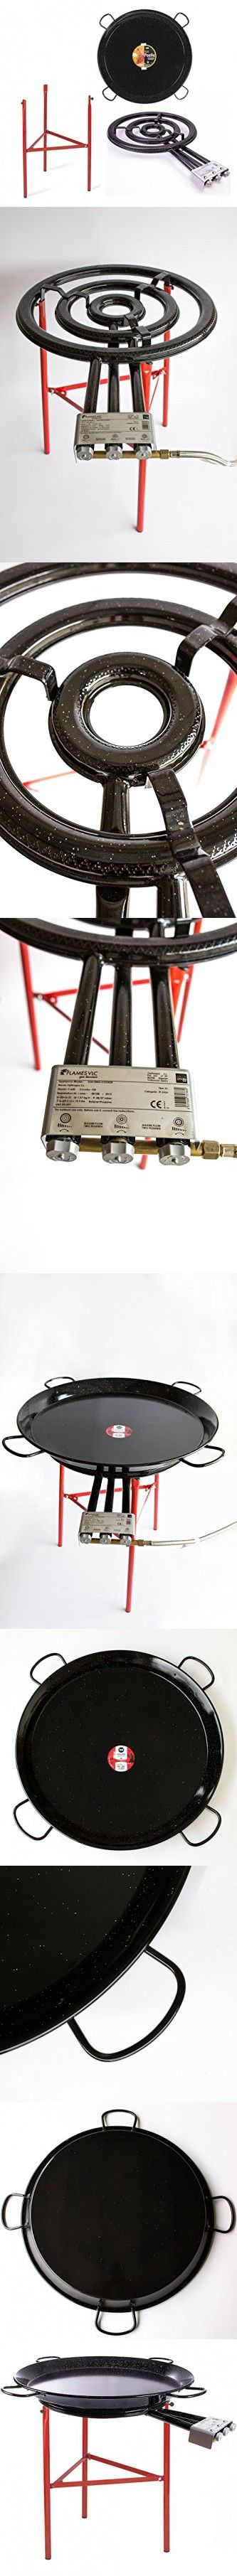 Paella Pan Enamelled + Paella Gas Burner and Stand Set - Complete Paella Kit for up to 40 Servings (Nonstick)